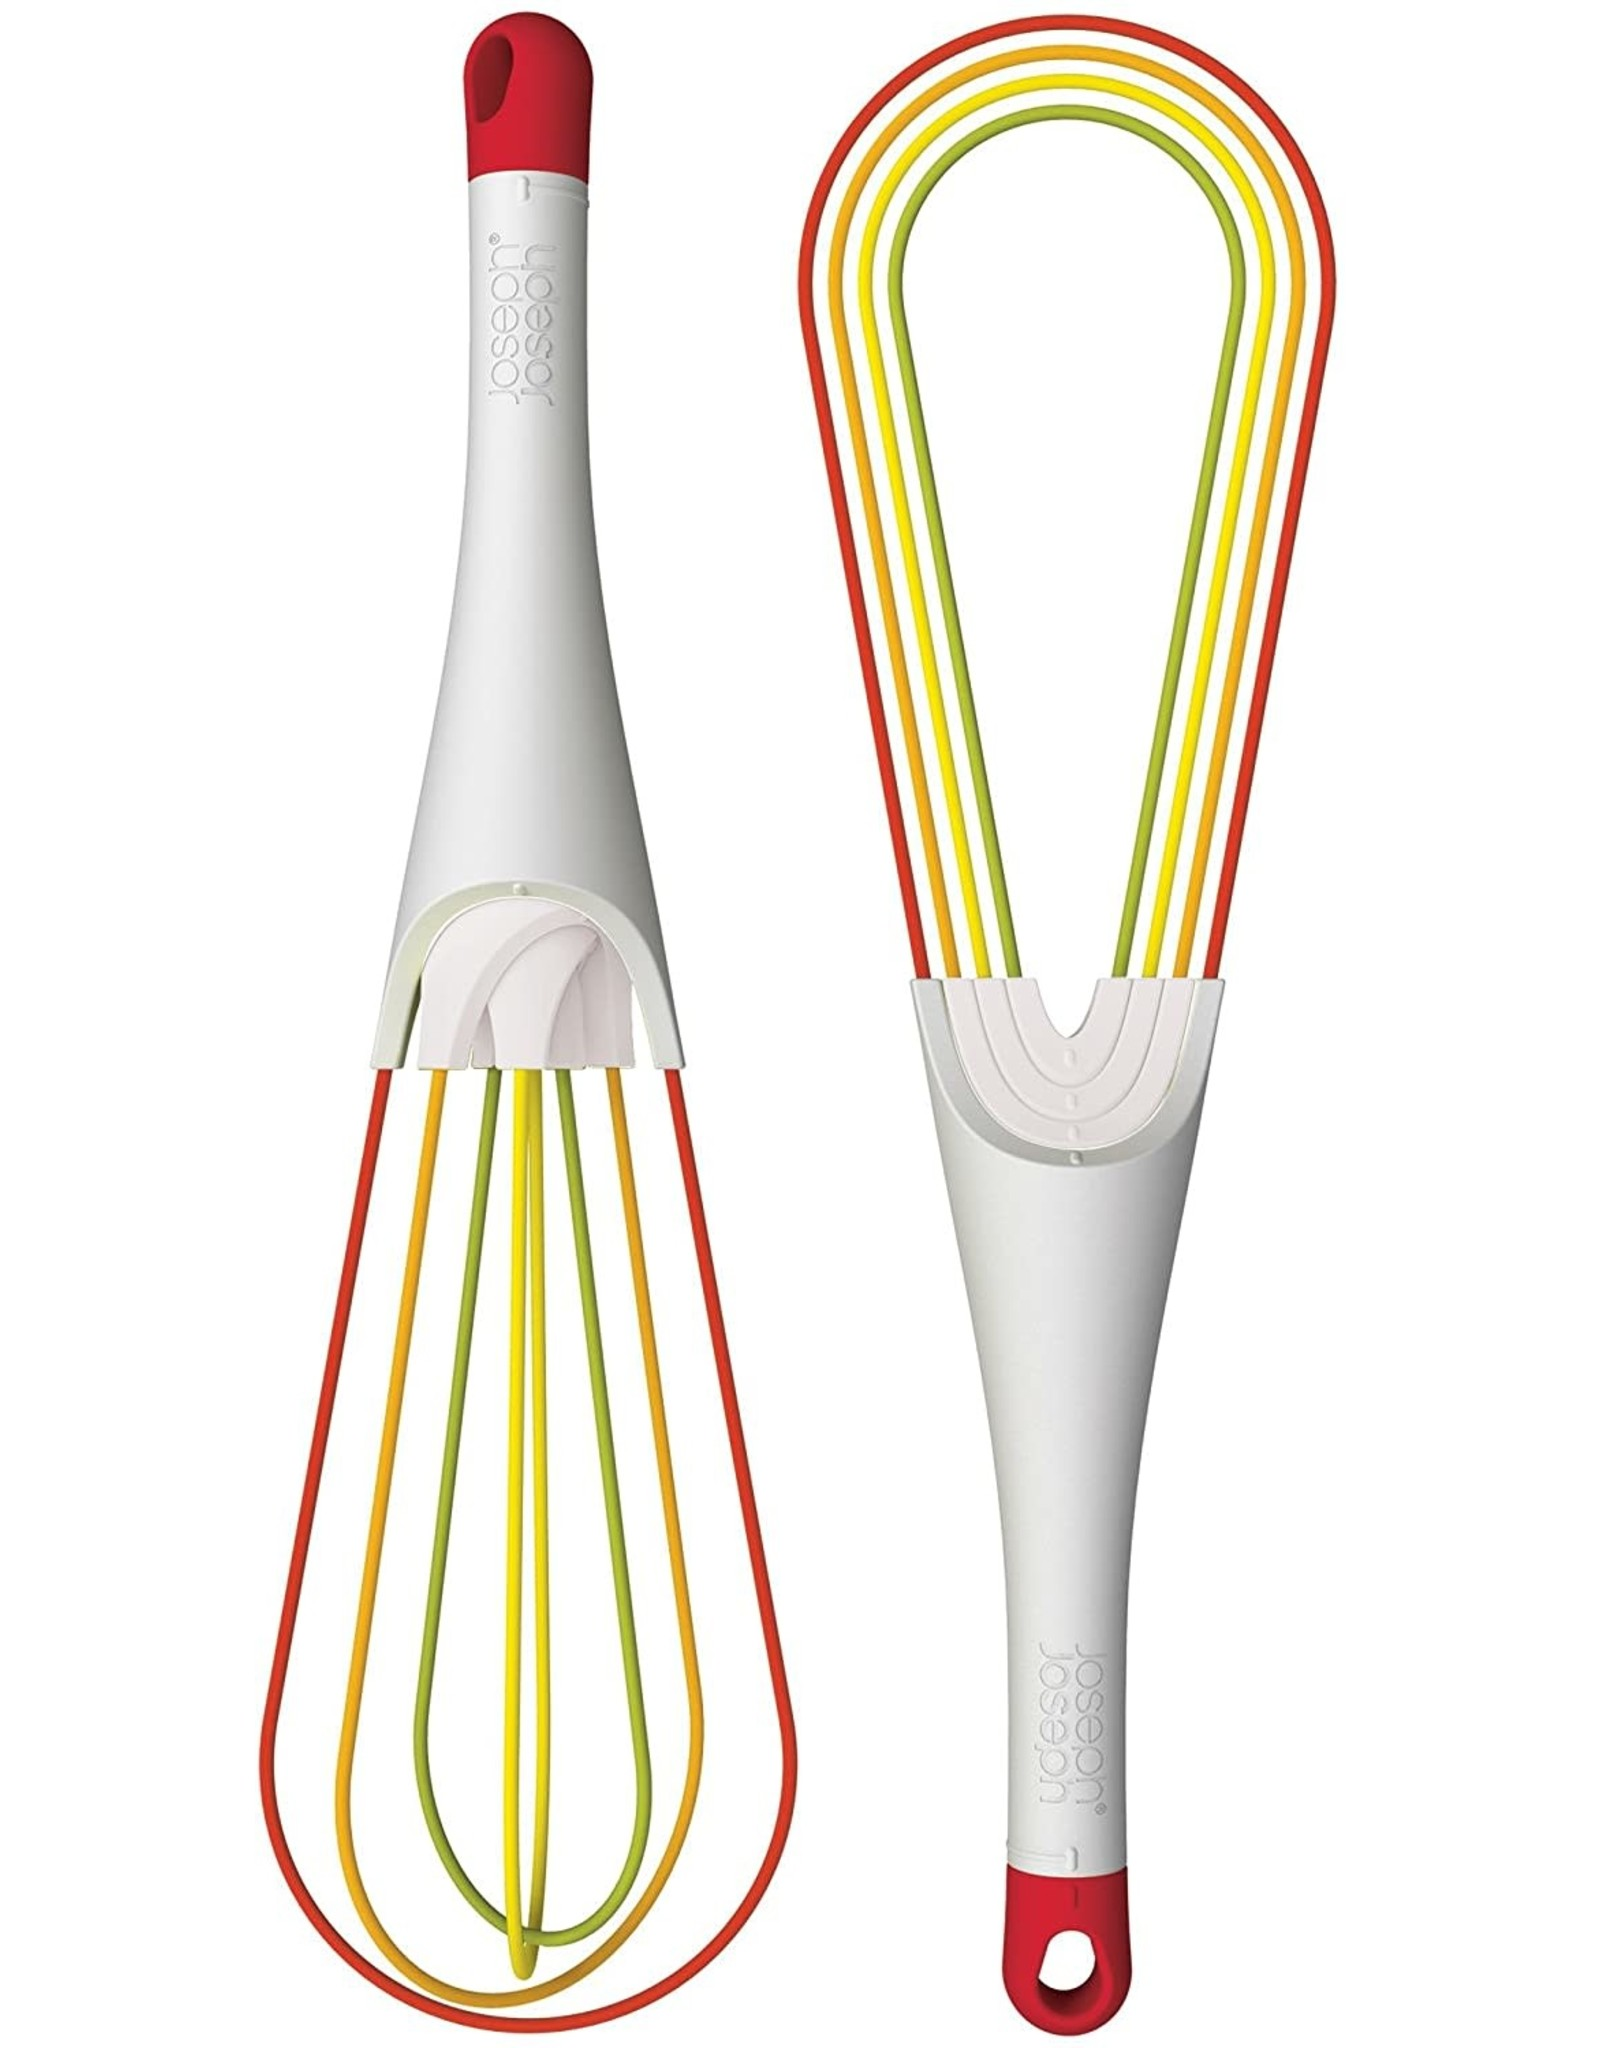 Joseph Joseph JOSEPH JOSEPH TWIST 2-IN-1 WHISK, MULTICOLOUR